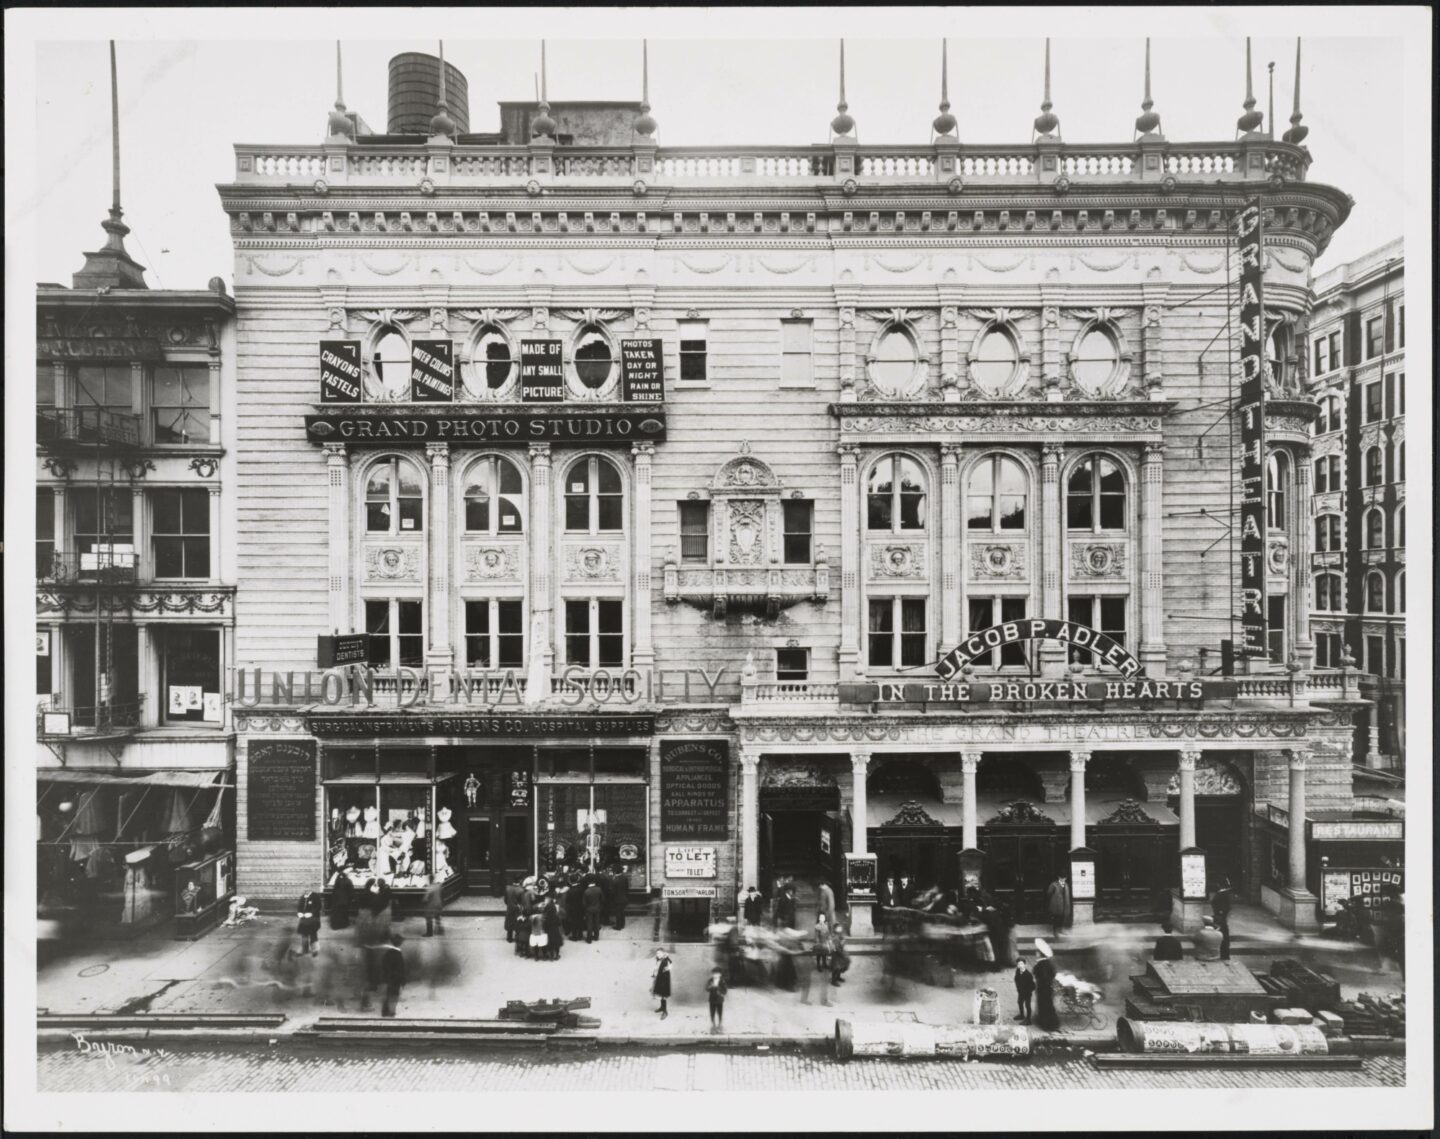 """<p>Grand Theatre presents Jacob P. Adler in <i>The Broken Hearts</i>, c. <span class=""""numbers"""">1903</span>. Photo: Byron Company. Museum of the City of New York, The J. Clarence Davies Collection, <span class=""""numbers"""">1929</span>.<span class=""""numbers"""">29</span>.<span class=""""numbers"""">100</span>.<span class=""""numbers"""">811</span></p>"""